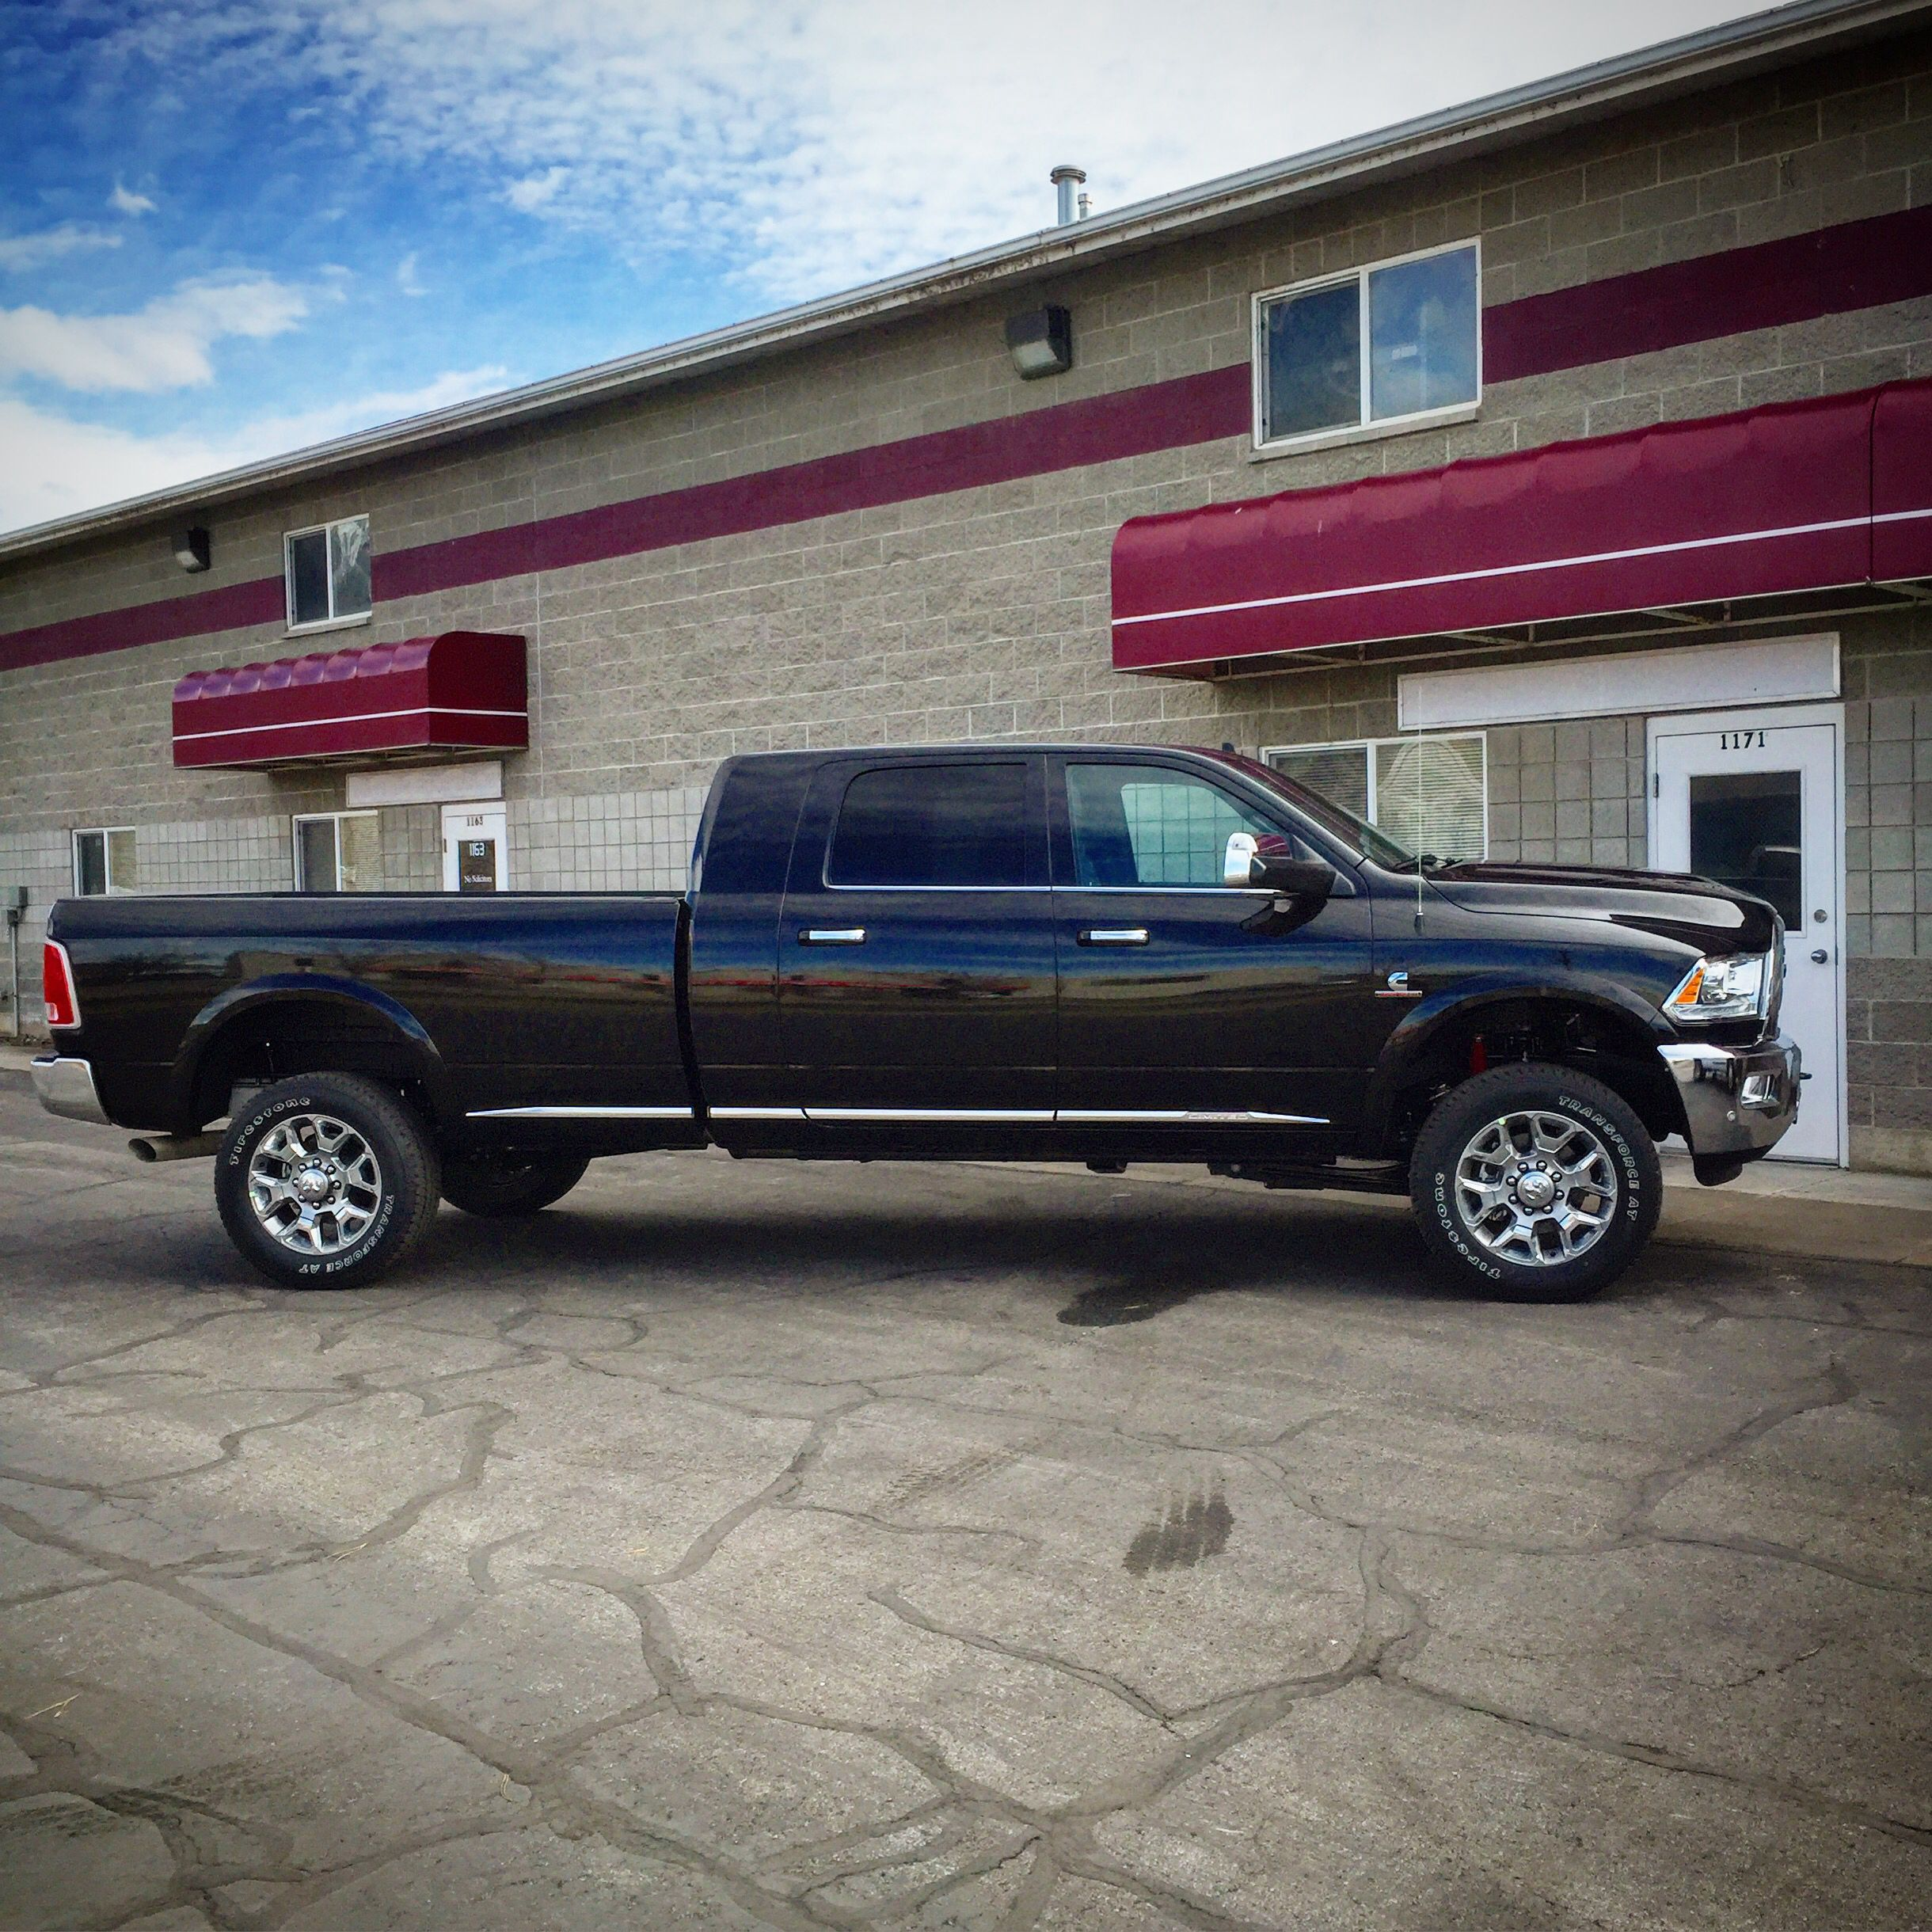 2014 Lifted Ram Mega Cab 2500: Dodge Ram 3500HD Mega Cab Long Bed